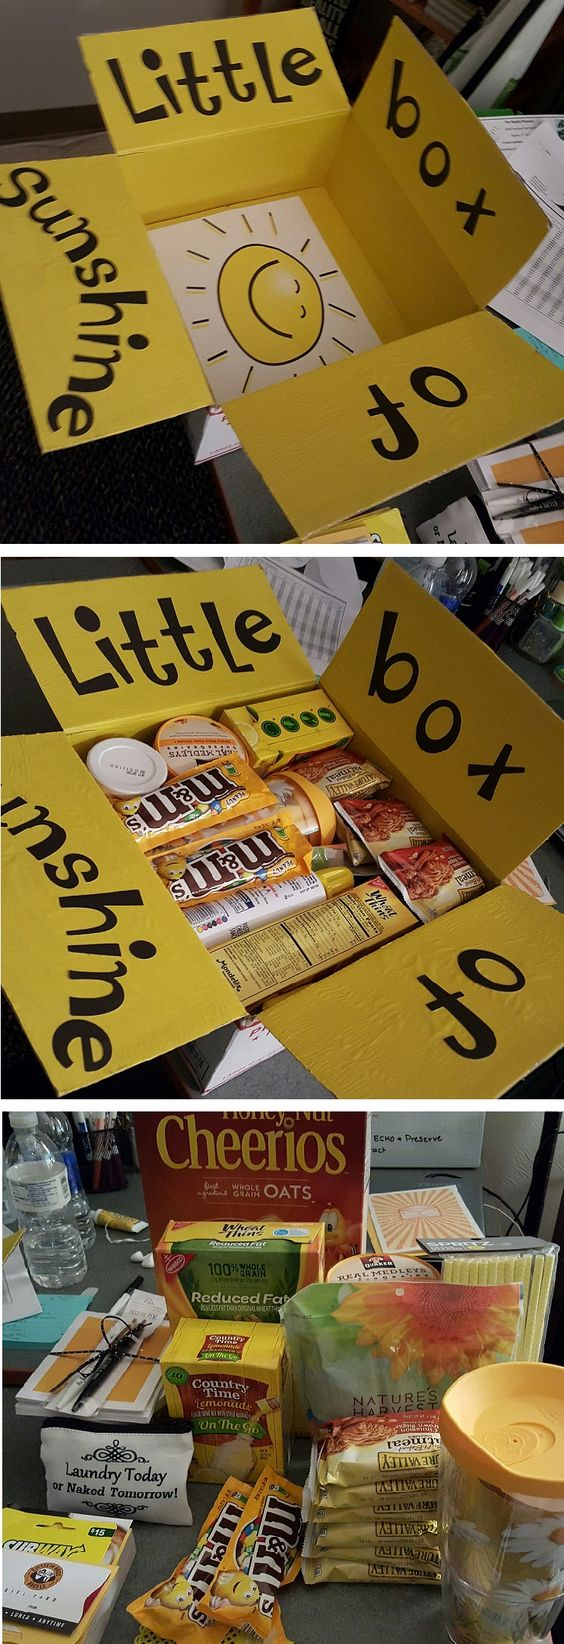 Little Box of Sunshine care package